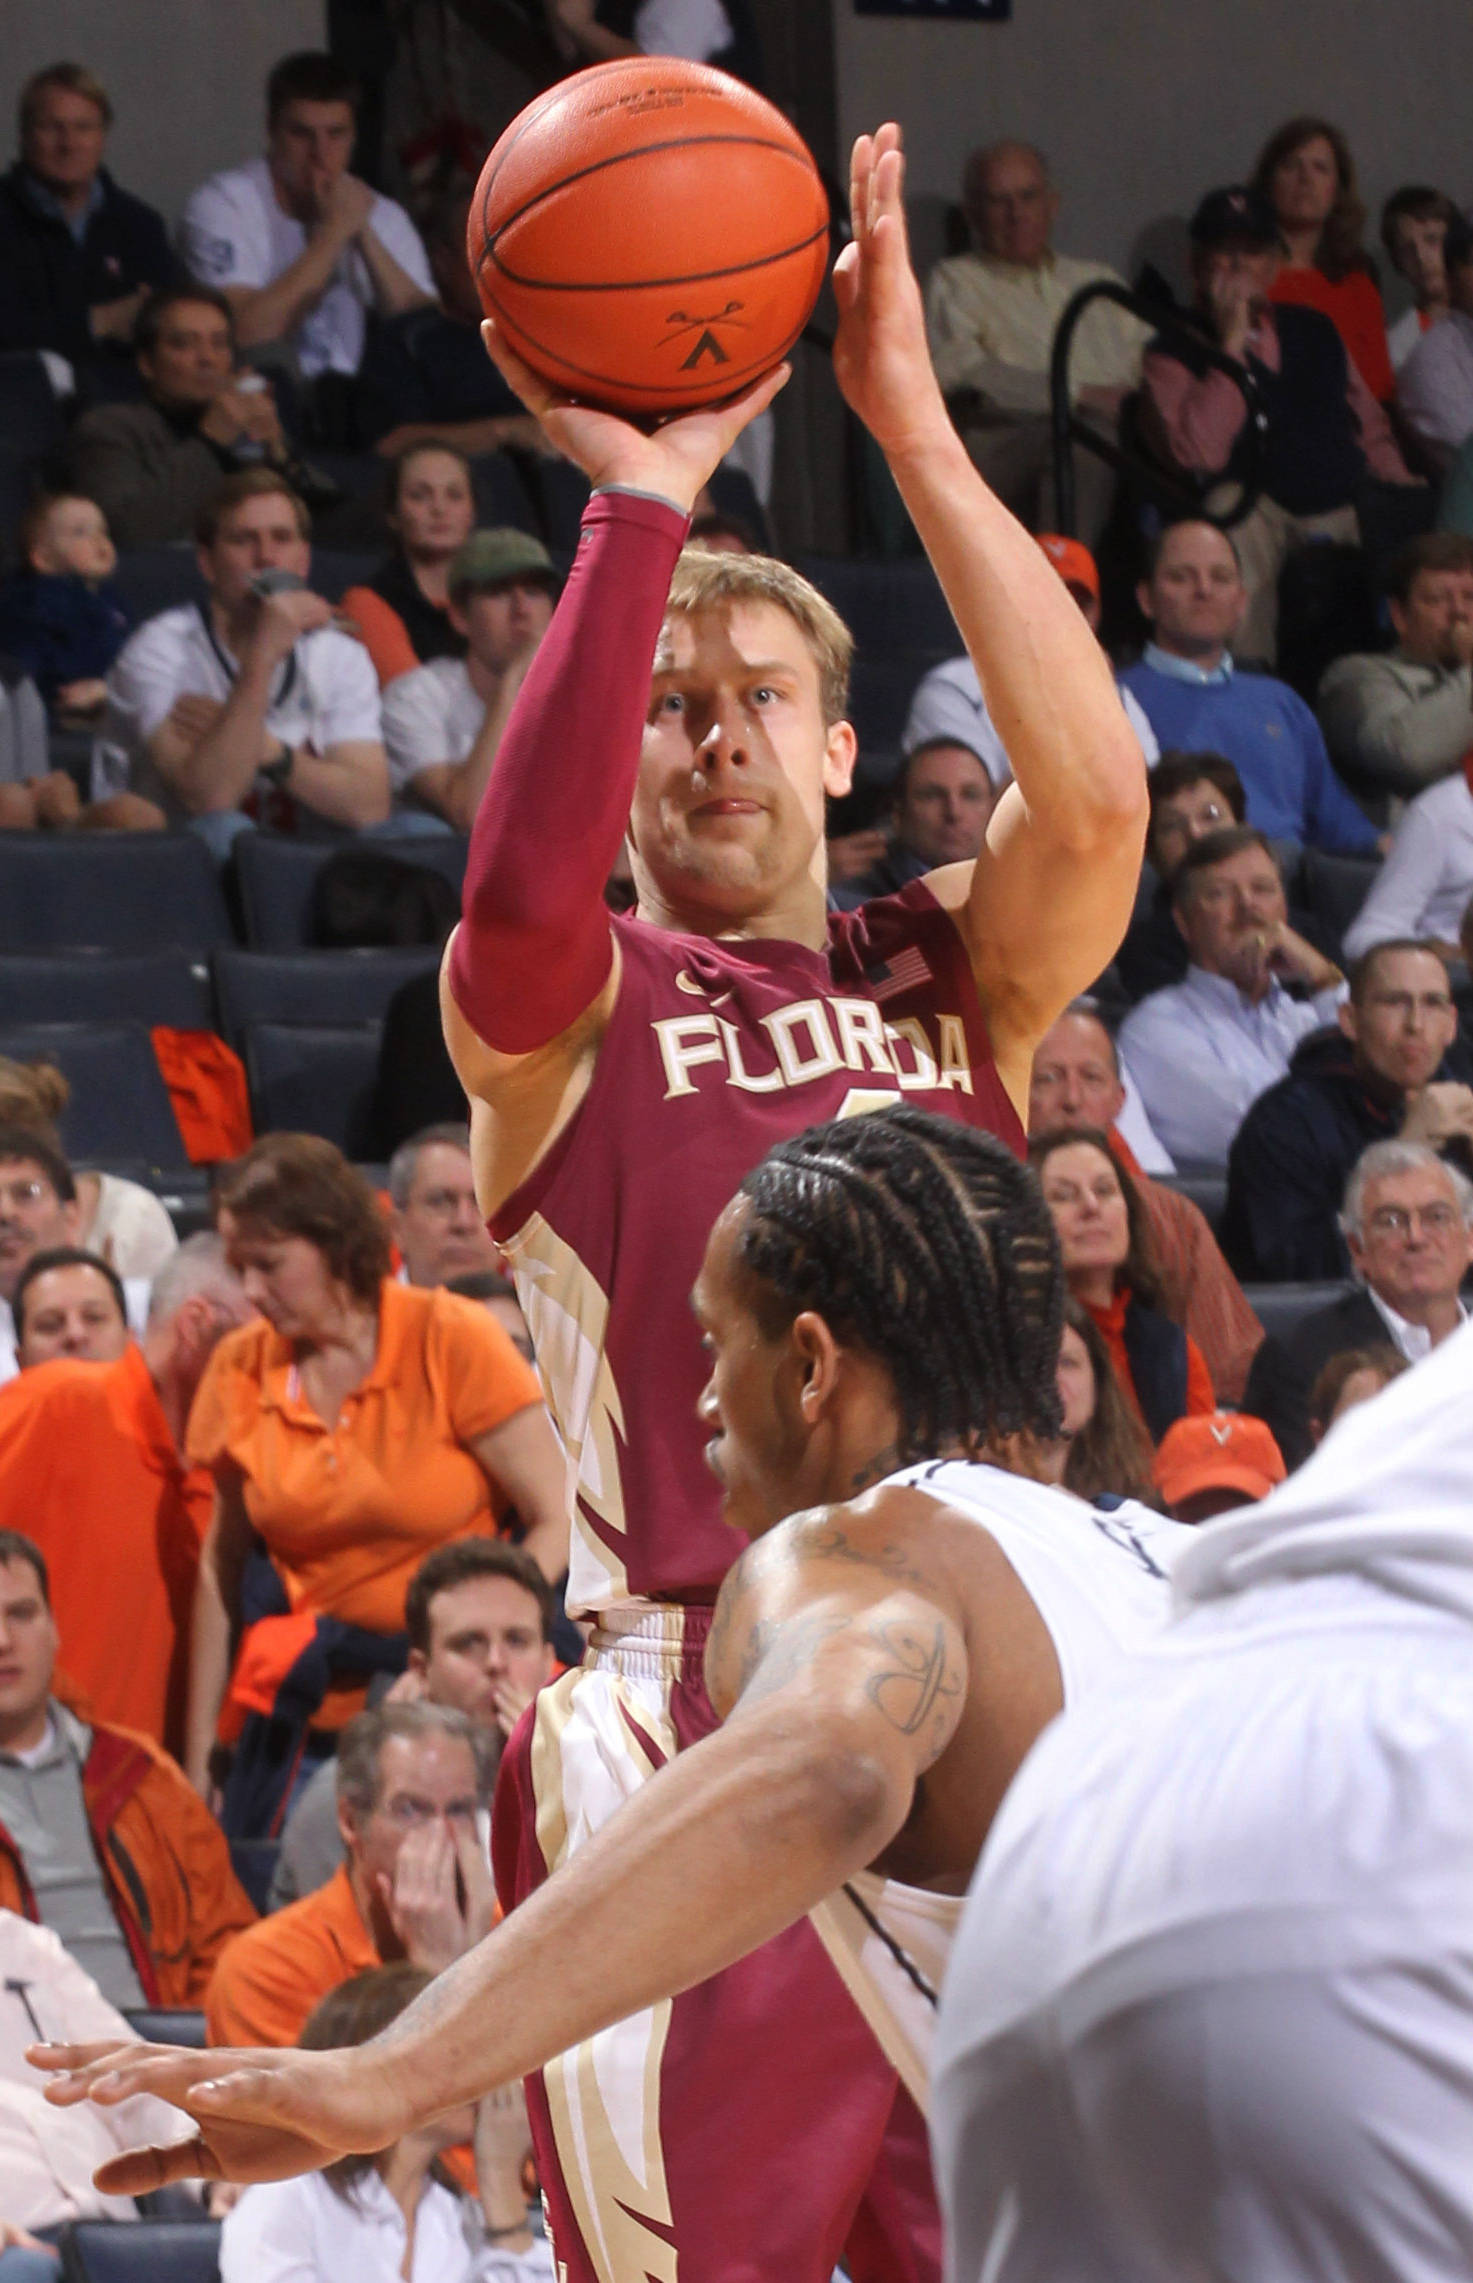 Florida State guard Deividas Dulkys shoots over Virginia forward Mike Scott during the first half. (AP Photo/Andrew Shurtleff)